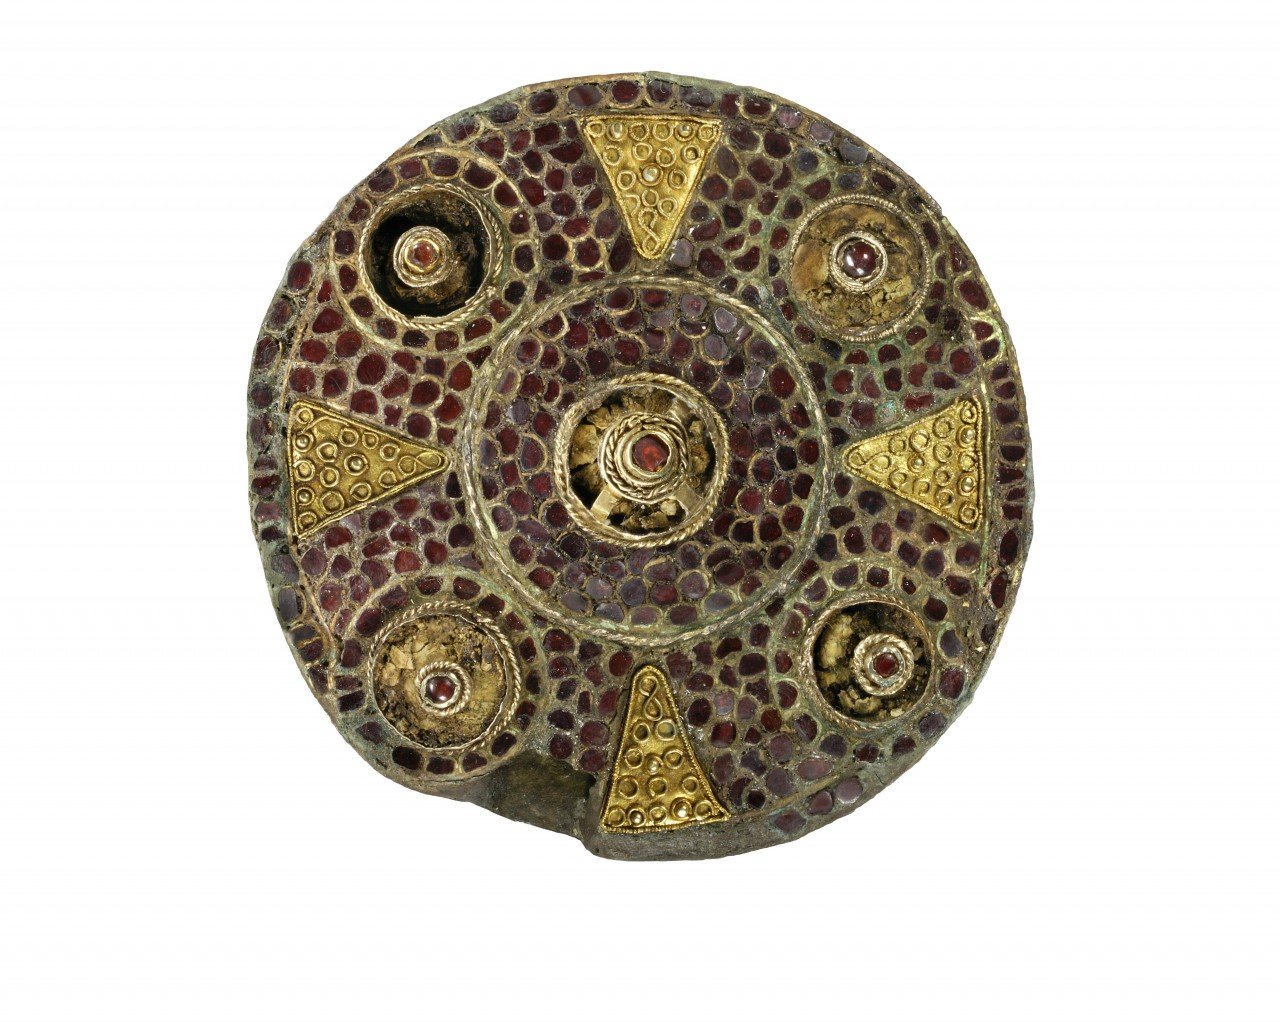 A collection of intricate Anglo-Saxon brooches